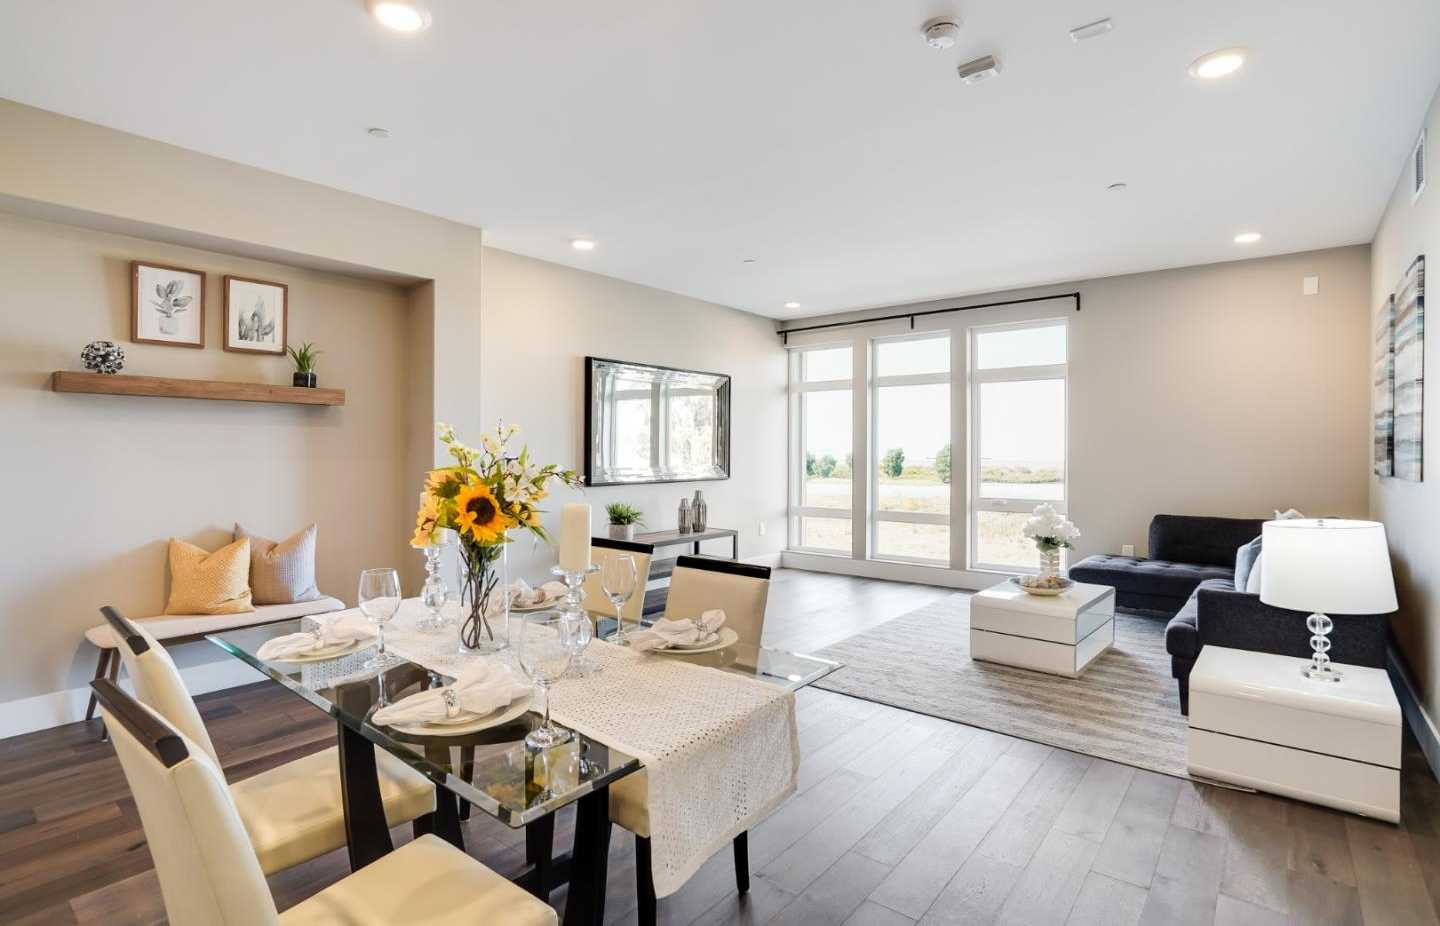 $1,250,000 - 3Br/2Ba -  for Sale in San Mateo